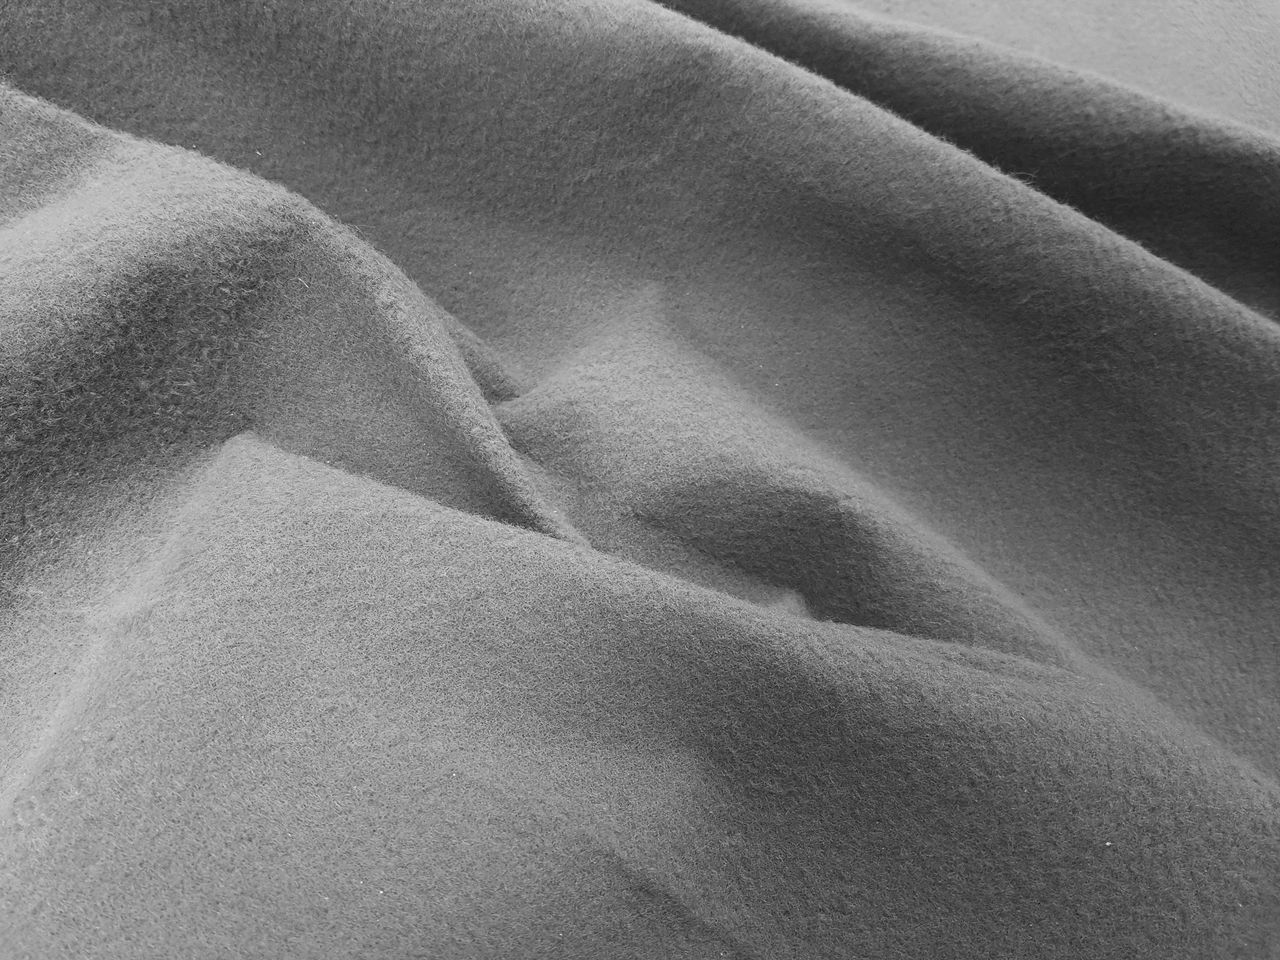 backgrounds, textile, textured, material, crumpled, full frame, no people, rippled, curve, nature, sand dune, close-up, day